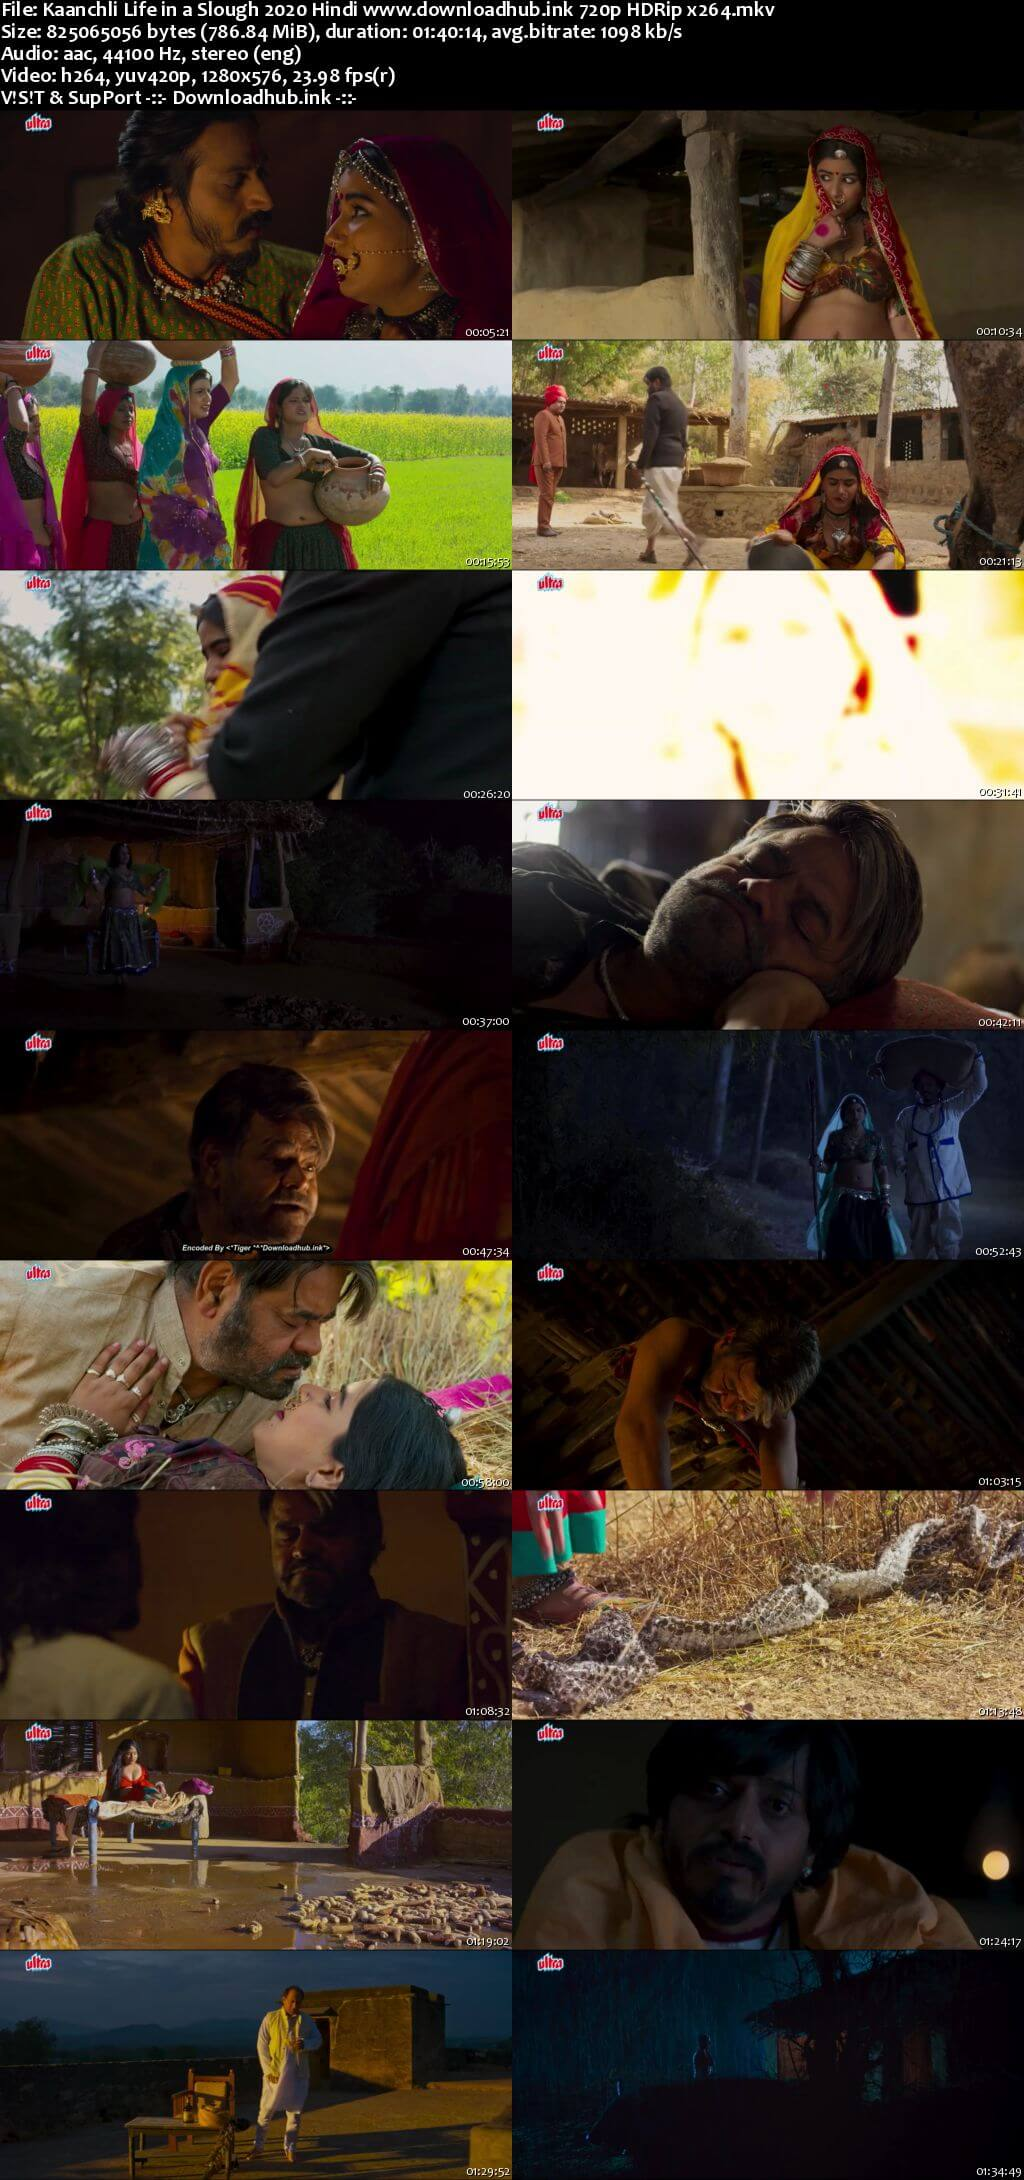 Kaanchli Life in a Slough 2020 Hindi 720p HDRip x264